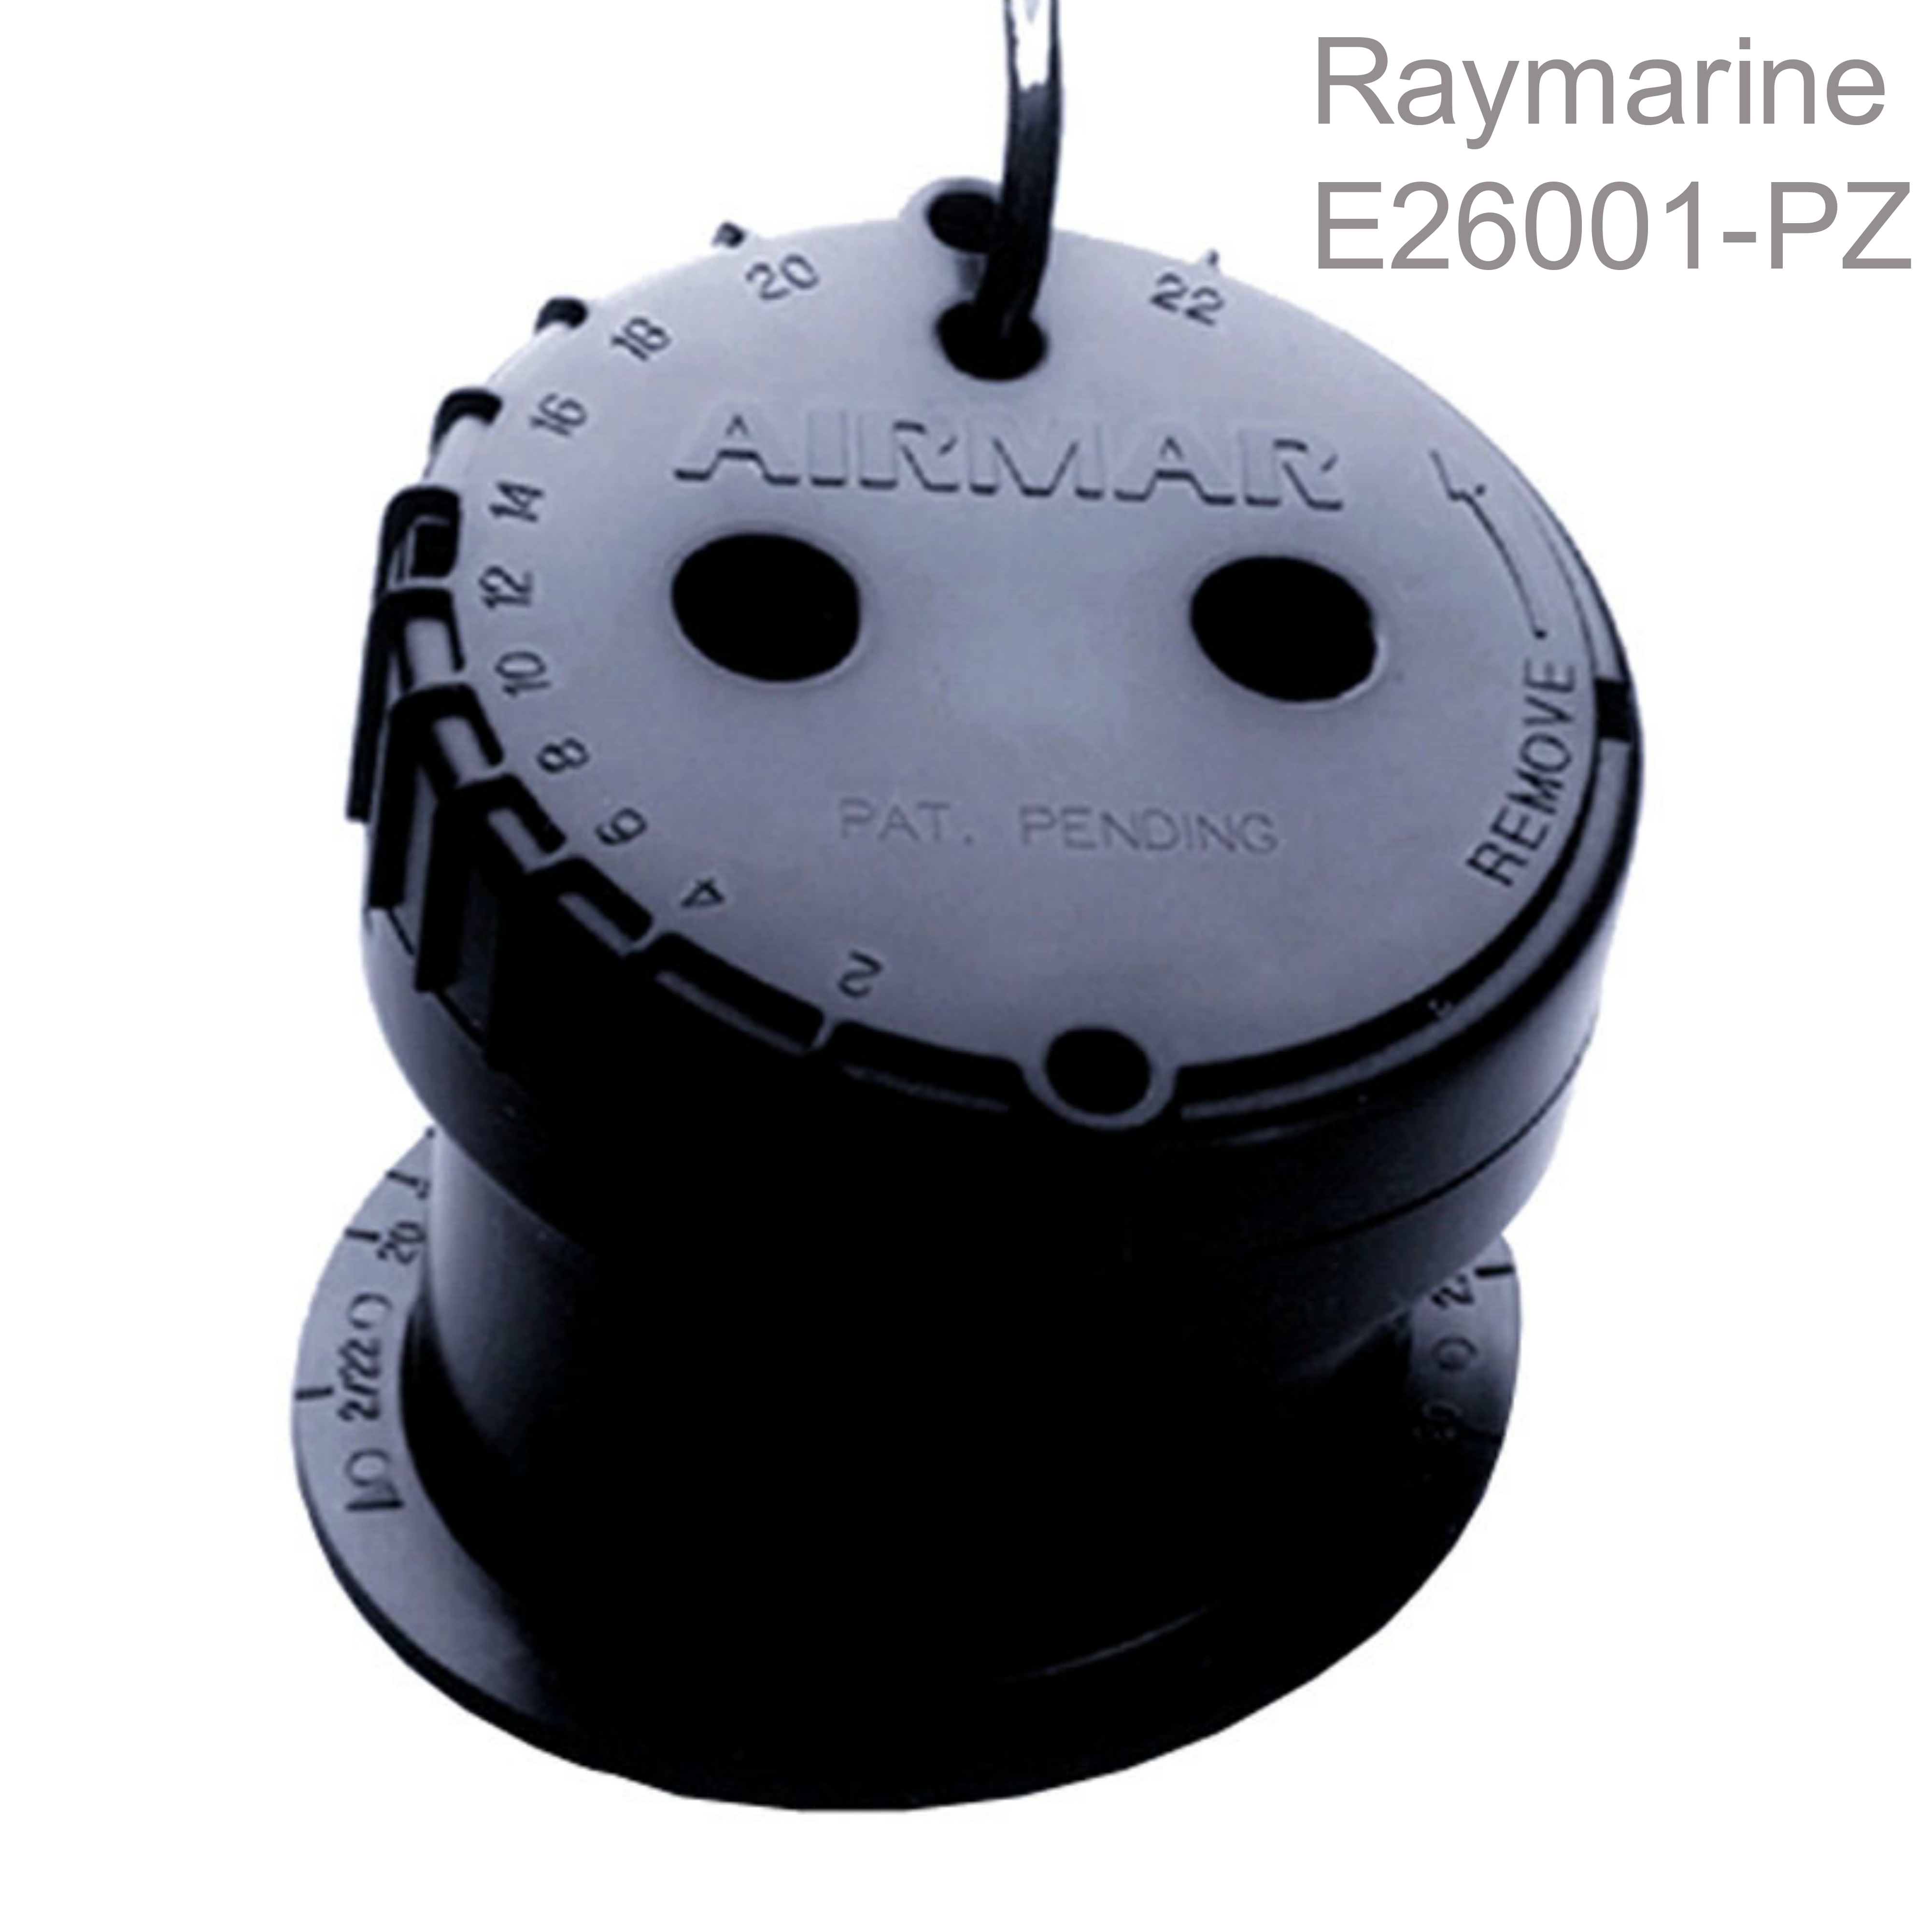 Raymarine P79-600W In Hull Depth Transducer|14m Cable|200 KHZ|Adjust 22º|For i40/50/ITC-5